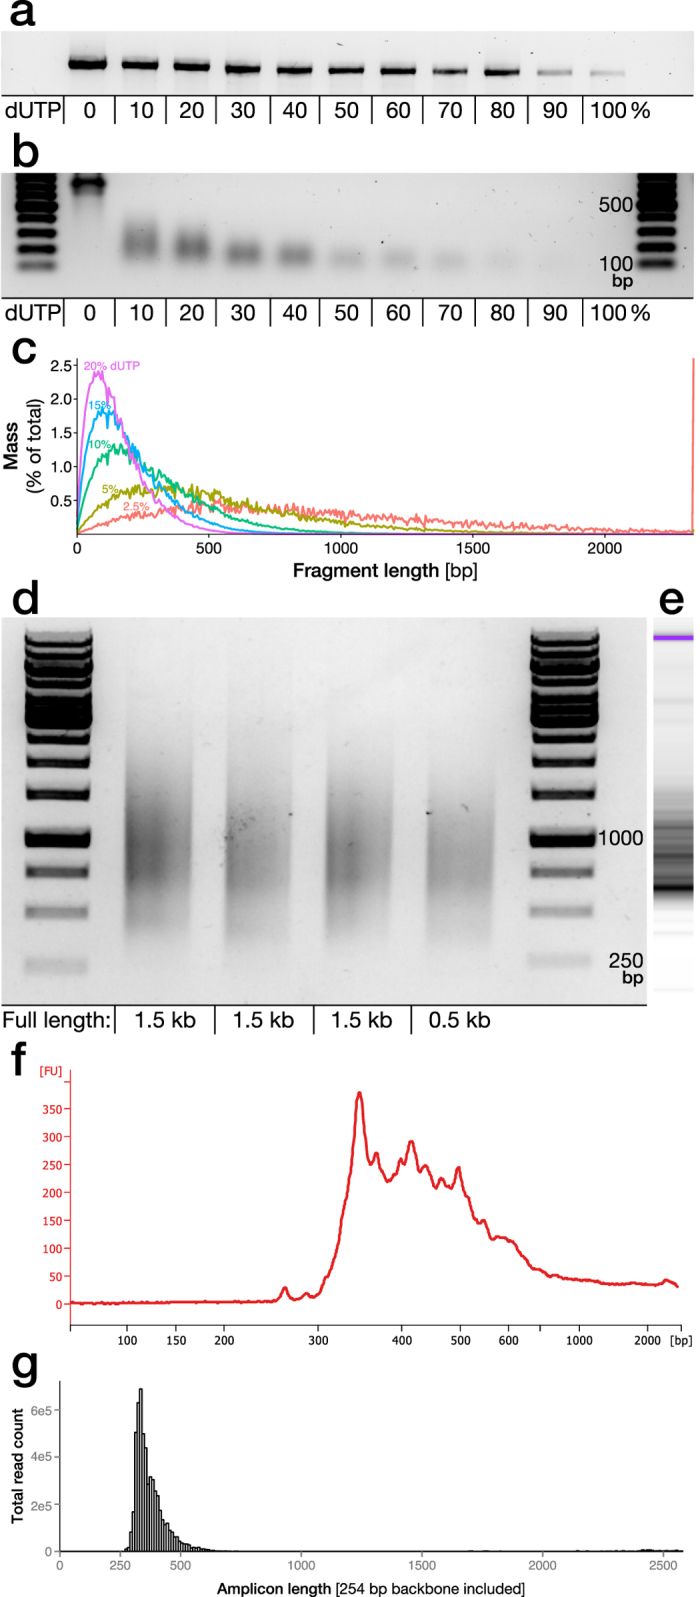 """Fragmentation of genetic sequences for insertion in barcode labelled plasmids. (a) A novel version of the Pfu-based proof-reading polymerase """"Phusion U"""" allows for insertion of dUTP during PCR amplification. However, efficiency of amplification is reduced with increasing dUTP/dTTP fraction as exemplified through amplification of a genomic sequence (1.1 kb long) utilized in library 1. (b) The percentage dUTP used in the PCR reaction is determining the distribution of fragment sizes after nicking by Uracil-DNA-Glycosylase (UDG) and NaOH single strand breakage. (c) As the cleavage sites are strictly sequence dependent and statistically predictable based on dUTP fraction and insertion frequency it can be simulated using the NExTProg 1.0 software. Here this was modelled using the sequence for library 1. (d) The dUTP/UDG fragmentation protocol was applied to three amplicons with different sequences but similar length and GC content (49–52%), aimed for inclusion in library 3, and one shorter amplicon, with 10% dUTP. (e,f) The fragments from the first lane were further analysed by higher accuracy electrophoretic analysis (Bioanalyzer) and (g) Illumina sequencing was performed after insertion into a plasmid backbone (library 3)."""